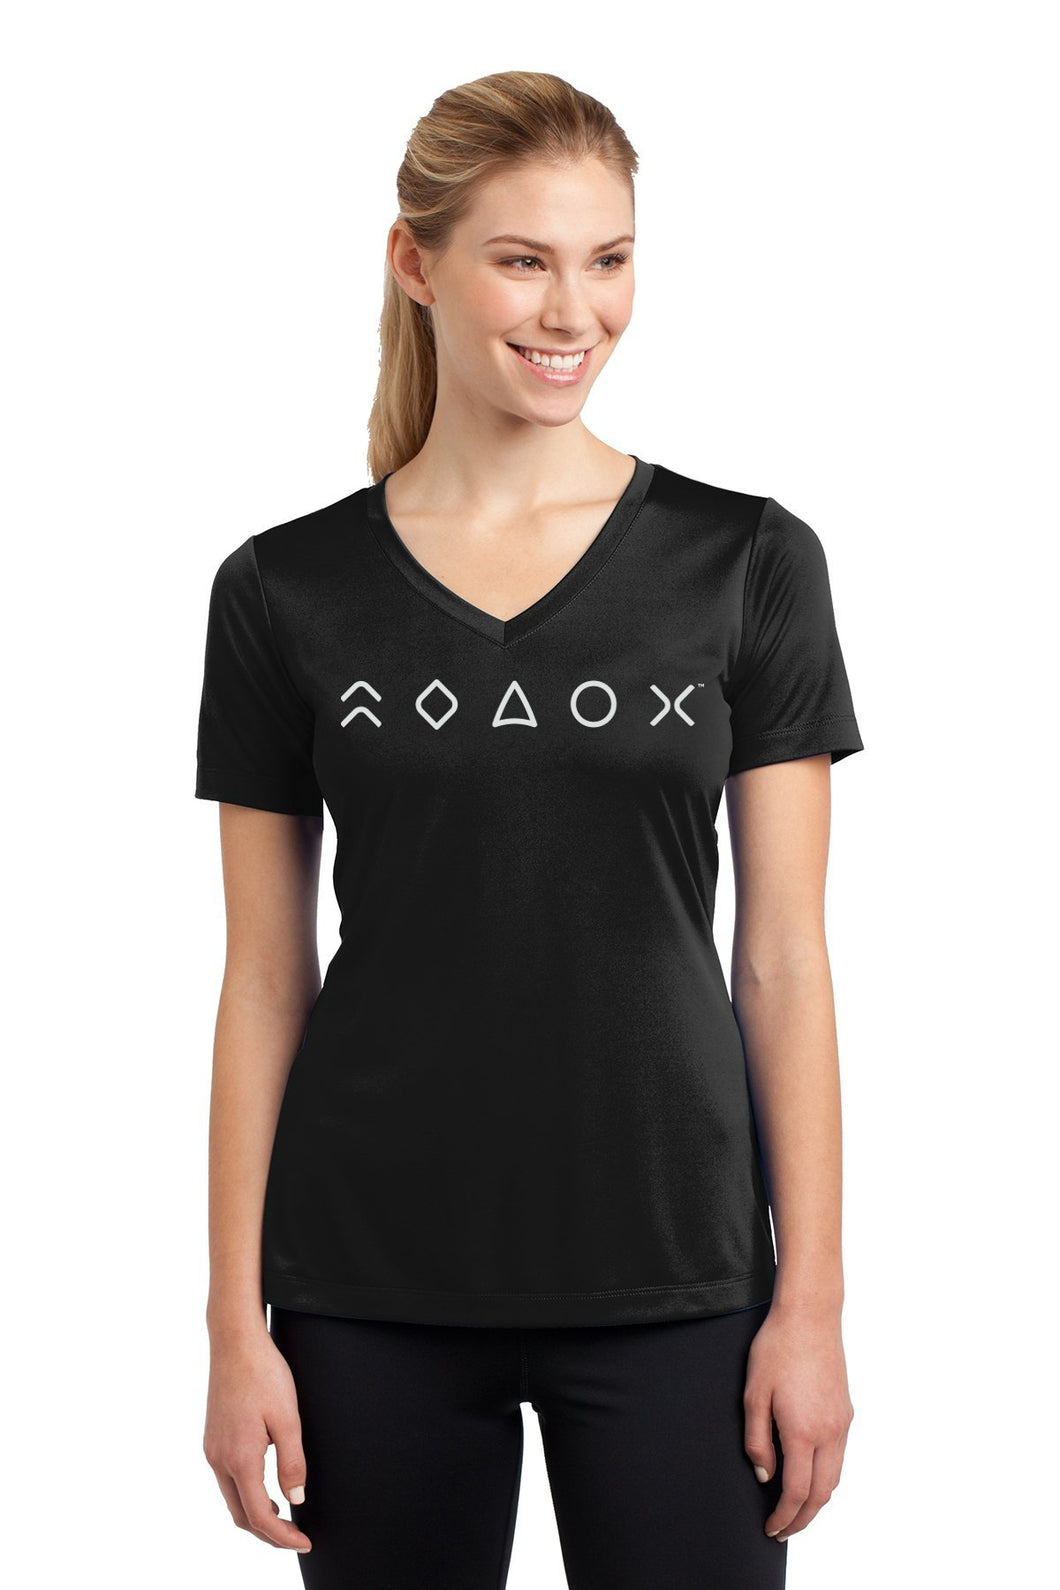 MaxLiving 5 Essentials Women's Black Short Sleeve Athletic Shirt